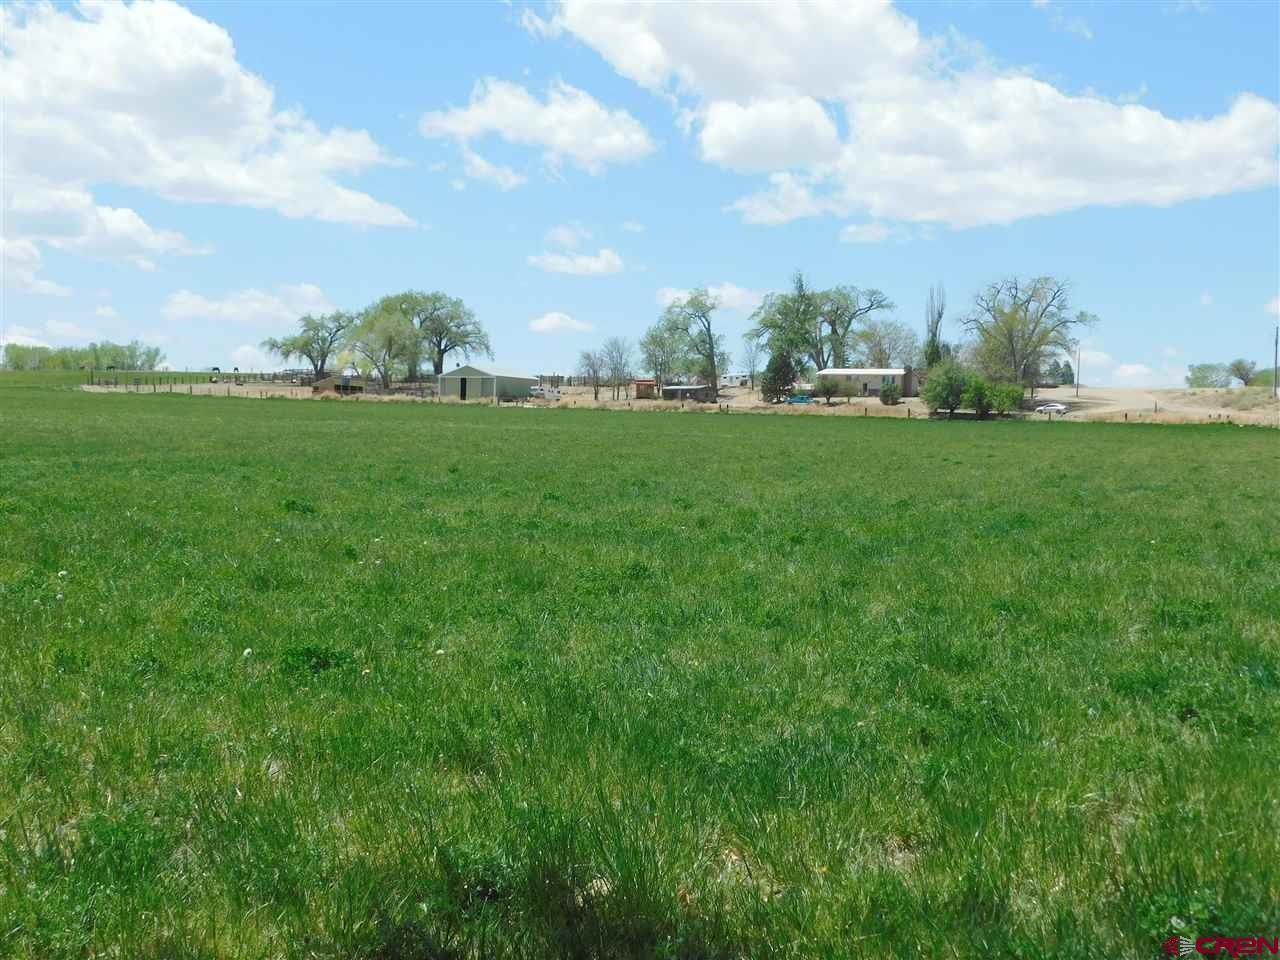 35 acre ranchette with fantastic views! The owners have painstakingly worked to create this ideal equestrian property. Plenty of grazing pastures; fenced/cross fenced, 4 stall loafing barn, hitch rail, large tack room and a MiraFount automatic waterer. Wise creek flows through the property and BLM riding is close by. 22.6 shares of Uncompahgre Valley Water Users irrigation water keeps the hay production bountiful. 25-40 tons in just the front 11 acre pasture (3 cuttings). Dog kennels, chicken coop, garden shed, large metal shop and more. Apricot and cherry trees plus a walnut tree. Covered back patio and fenced backyard. The home and outbuildings have been greatly improved and a downstairs bathroom added. Open floor plan with master bedroom on the main level. Wood burning stove is a welcomed feature. This very private gorgeous setting is a rare find!